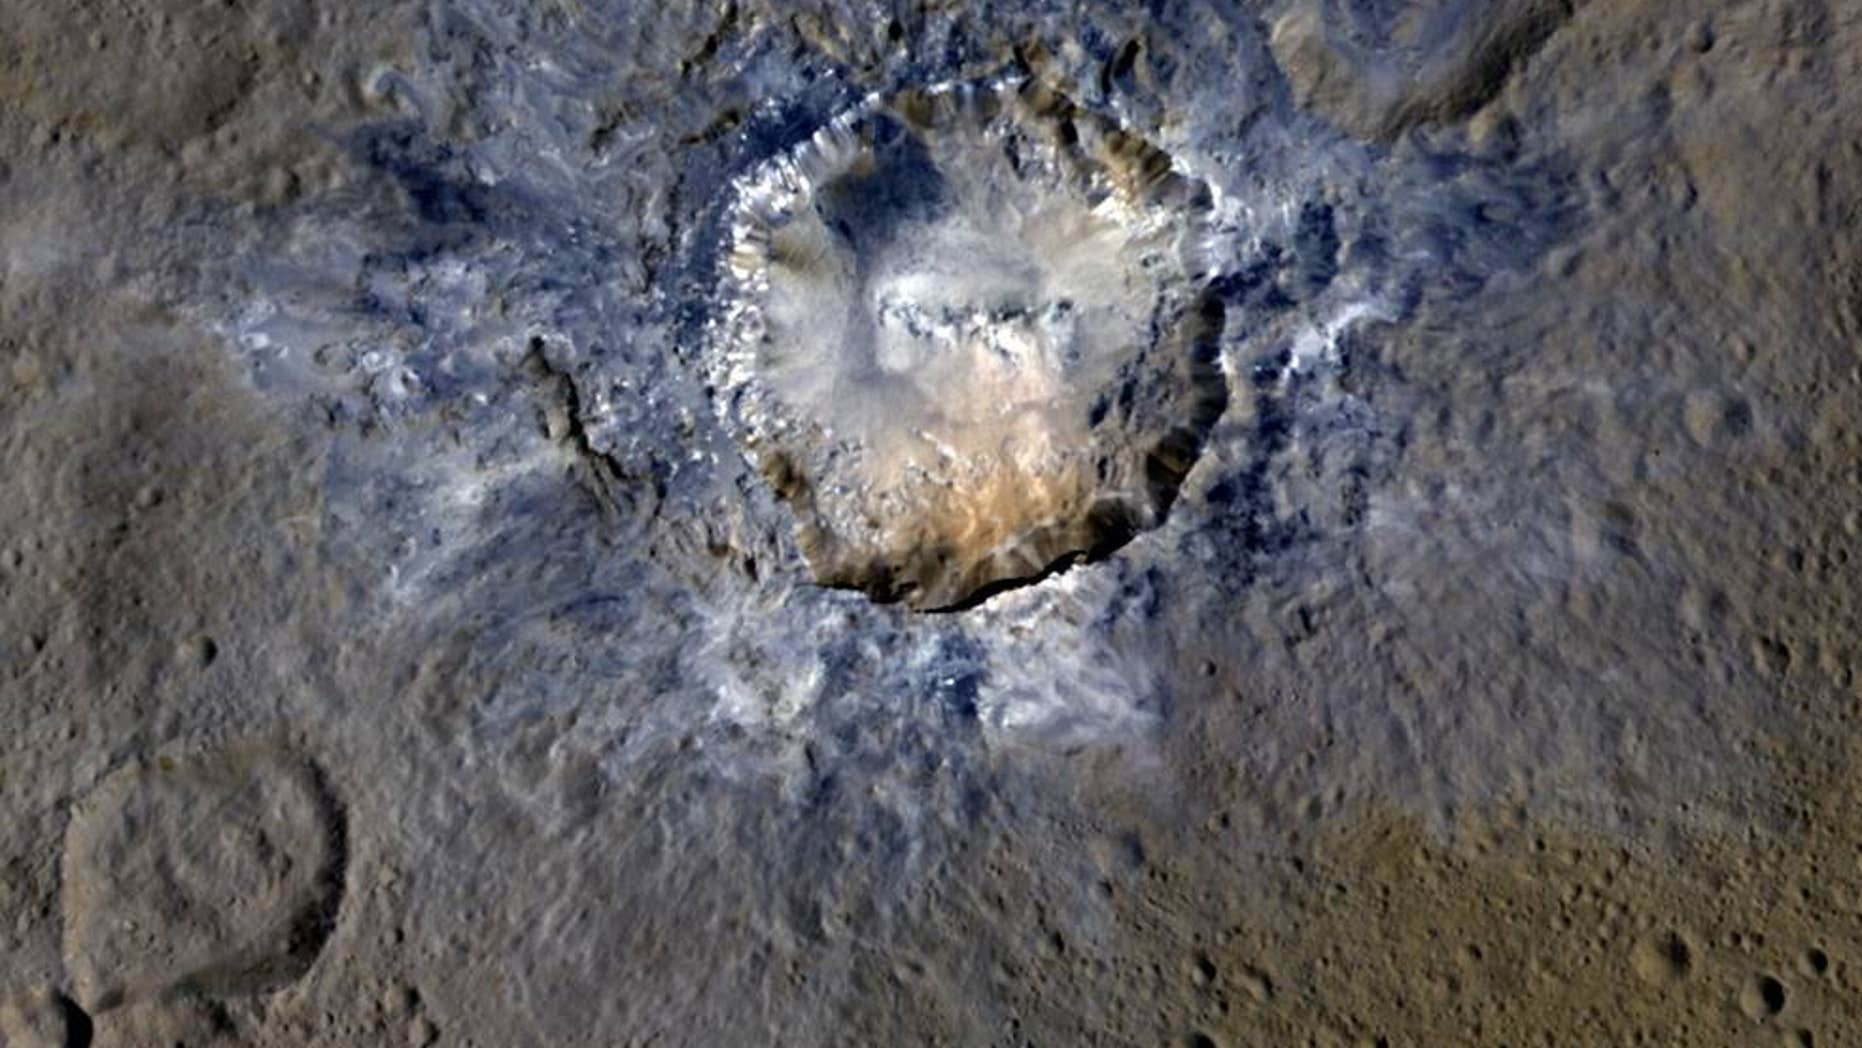 Ceres' Haulani Crater, with a diameter of 21 miles, shows evidence of landslides from its crater rim.  (Credits: NASA/JPL-Caltech/UCLA/MPS/DLR/IDA)